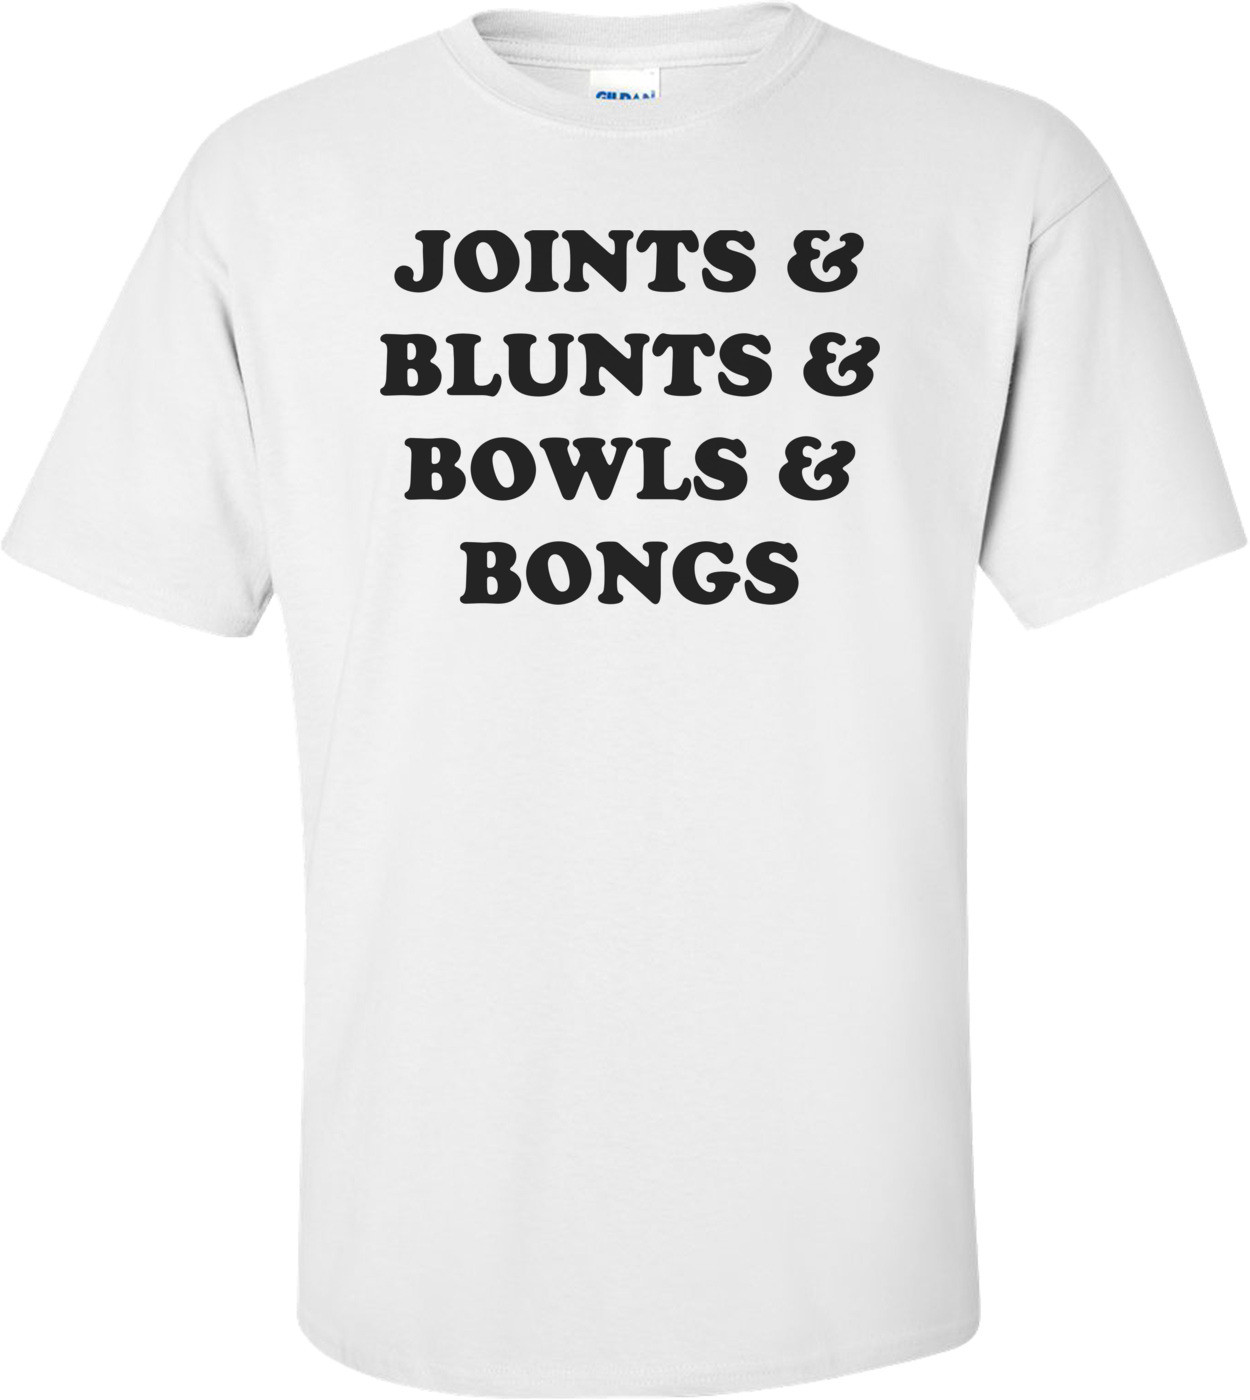 JOINTS & BLUNTS & BOWLS & BONGS Shirt